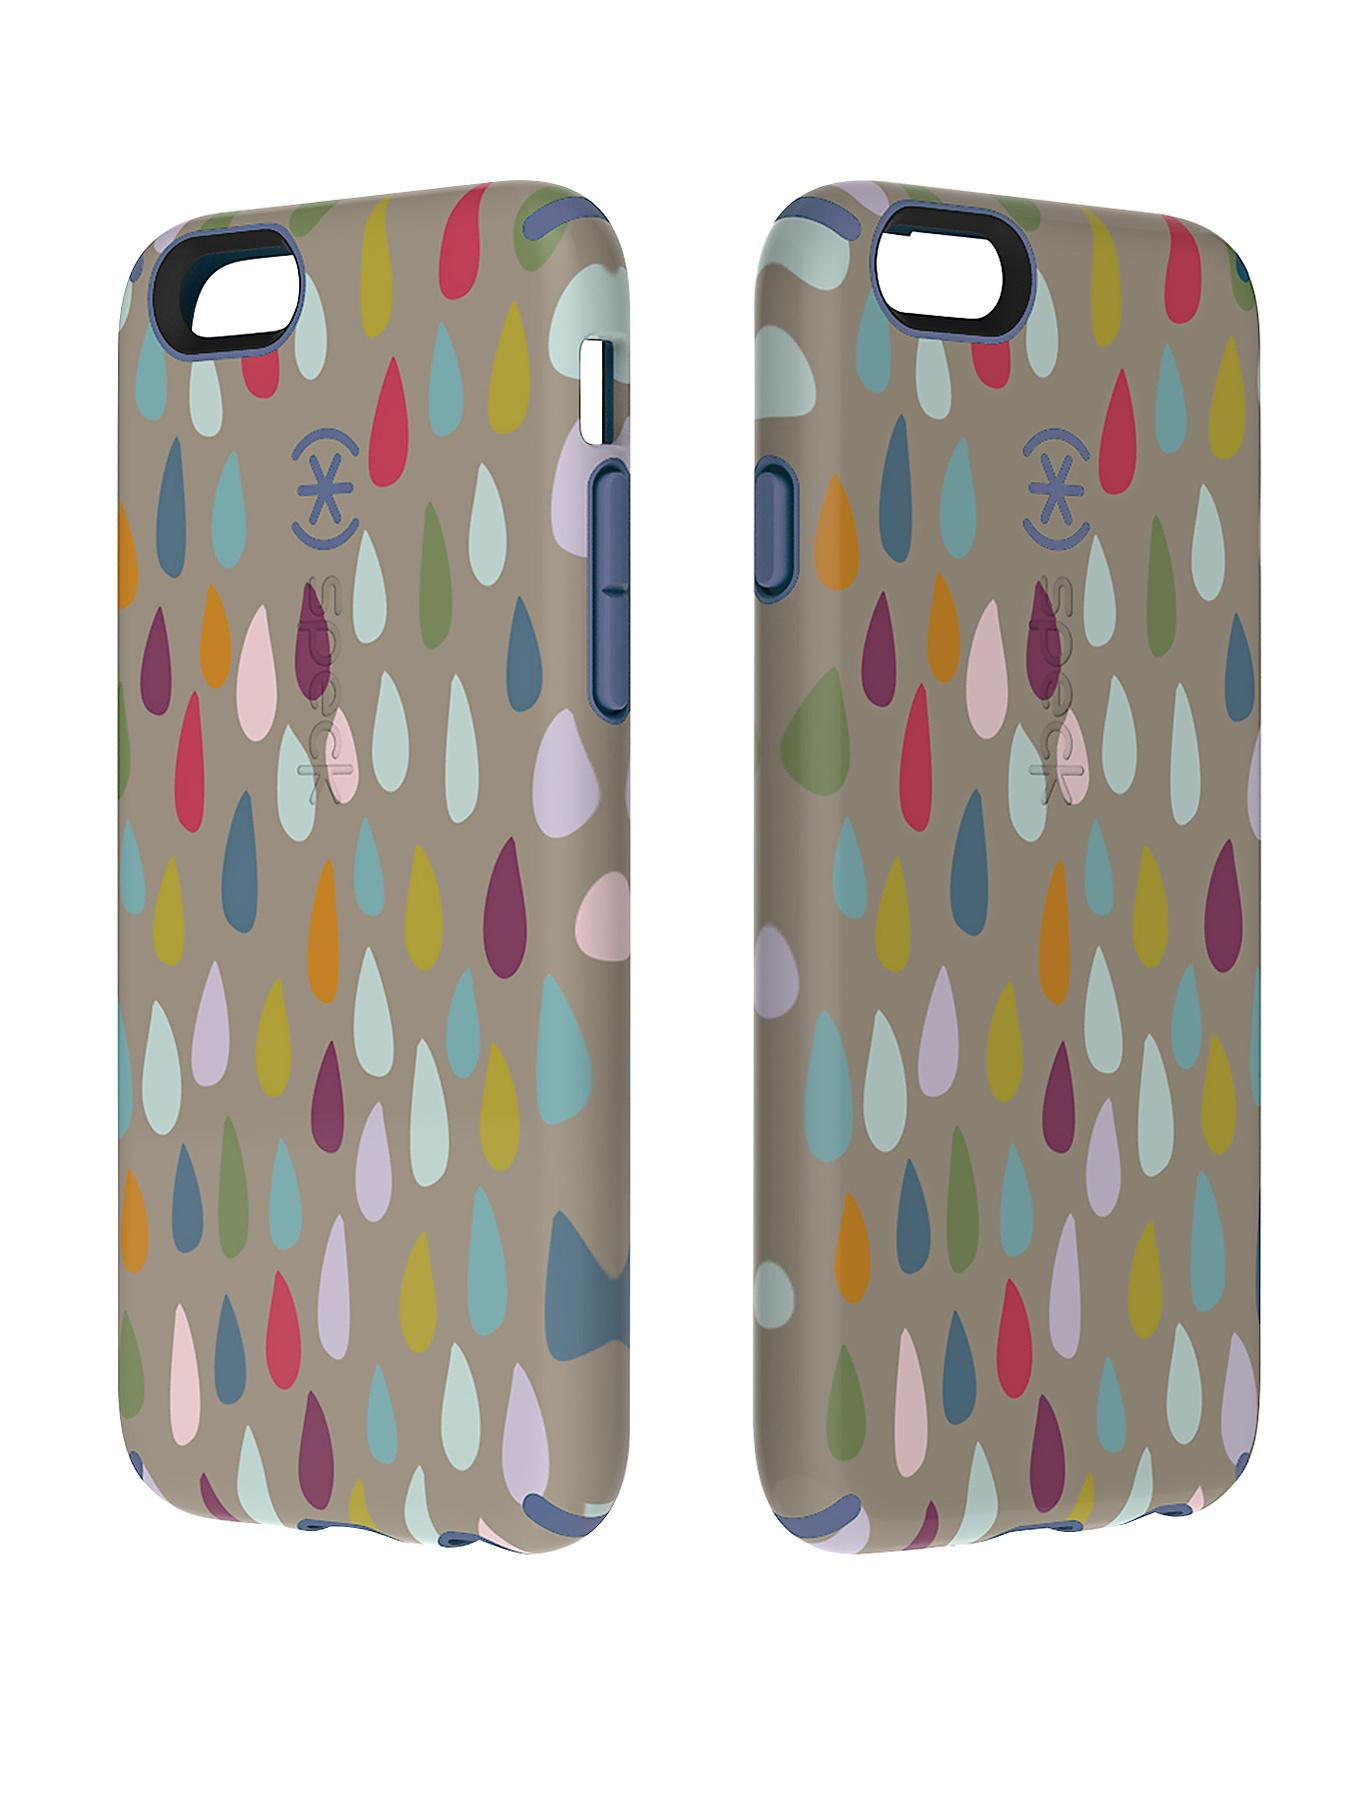 Speck iPhone 6 CandyShell Case - Inked Rainbow Drop Pattern